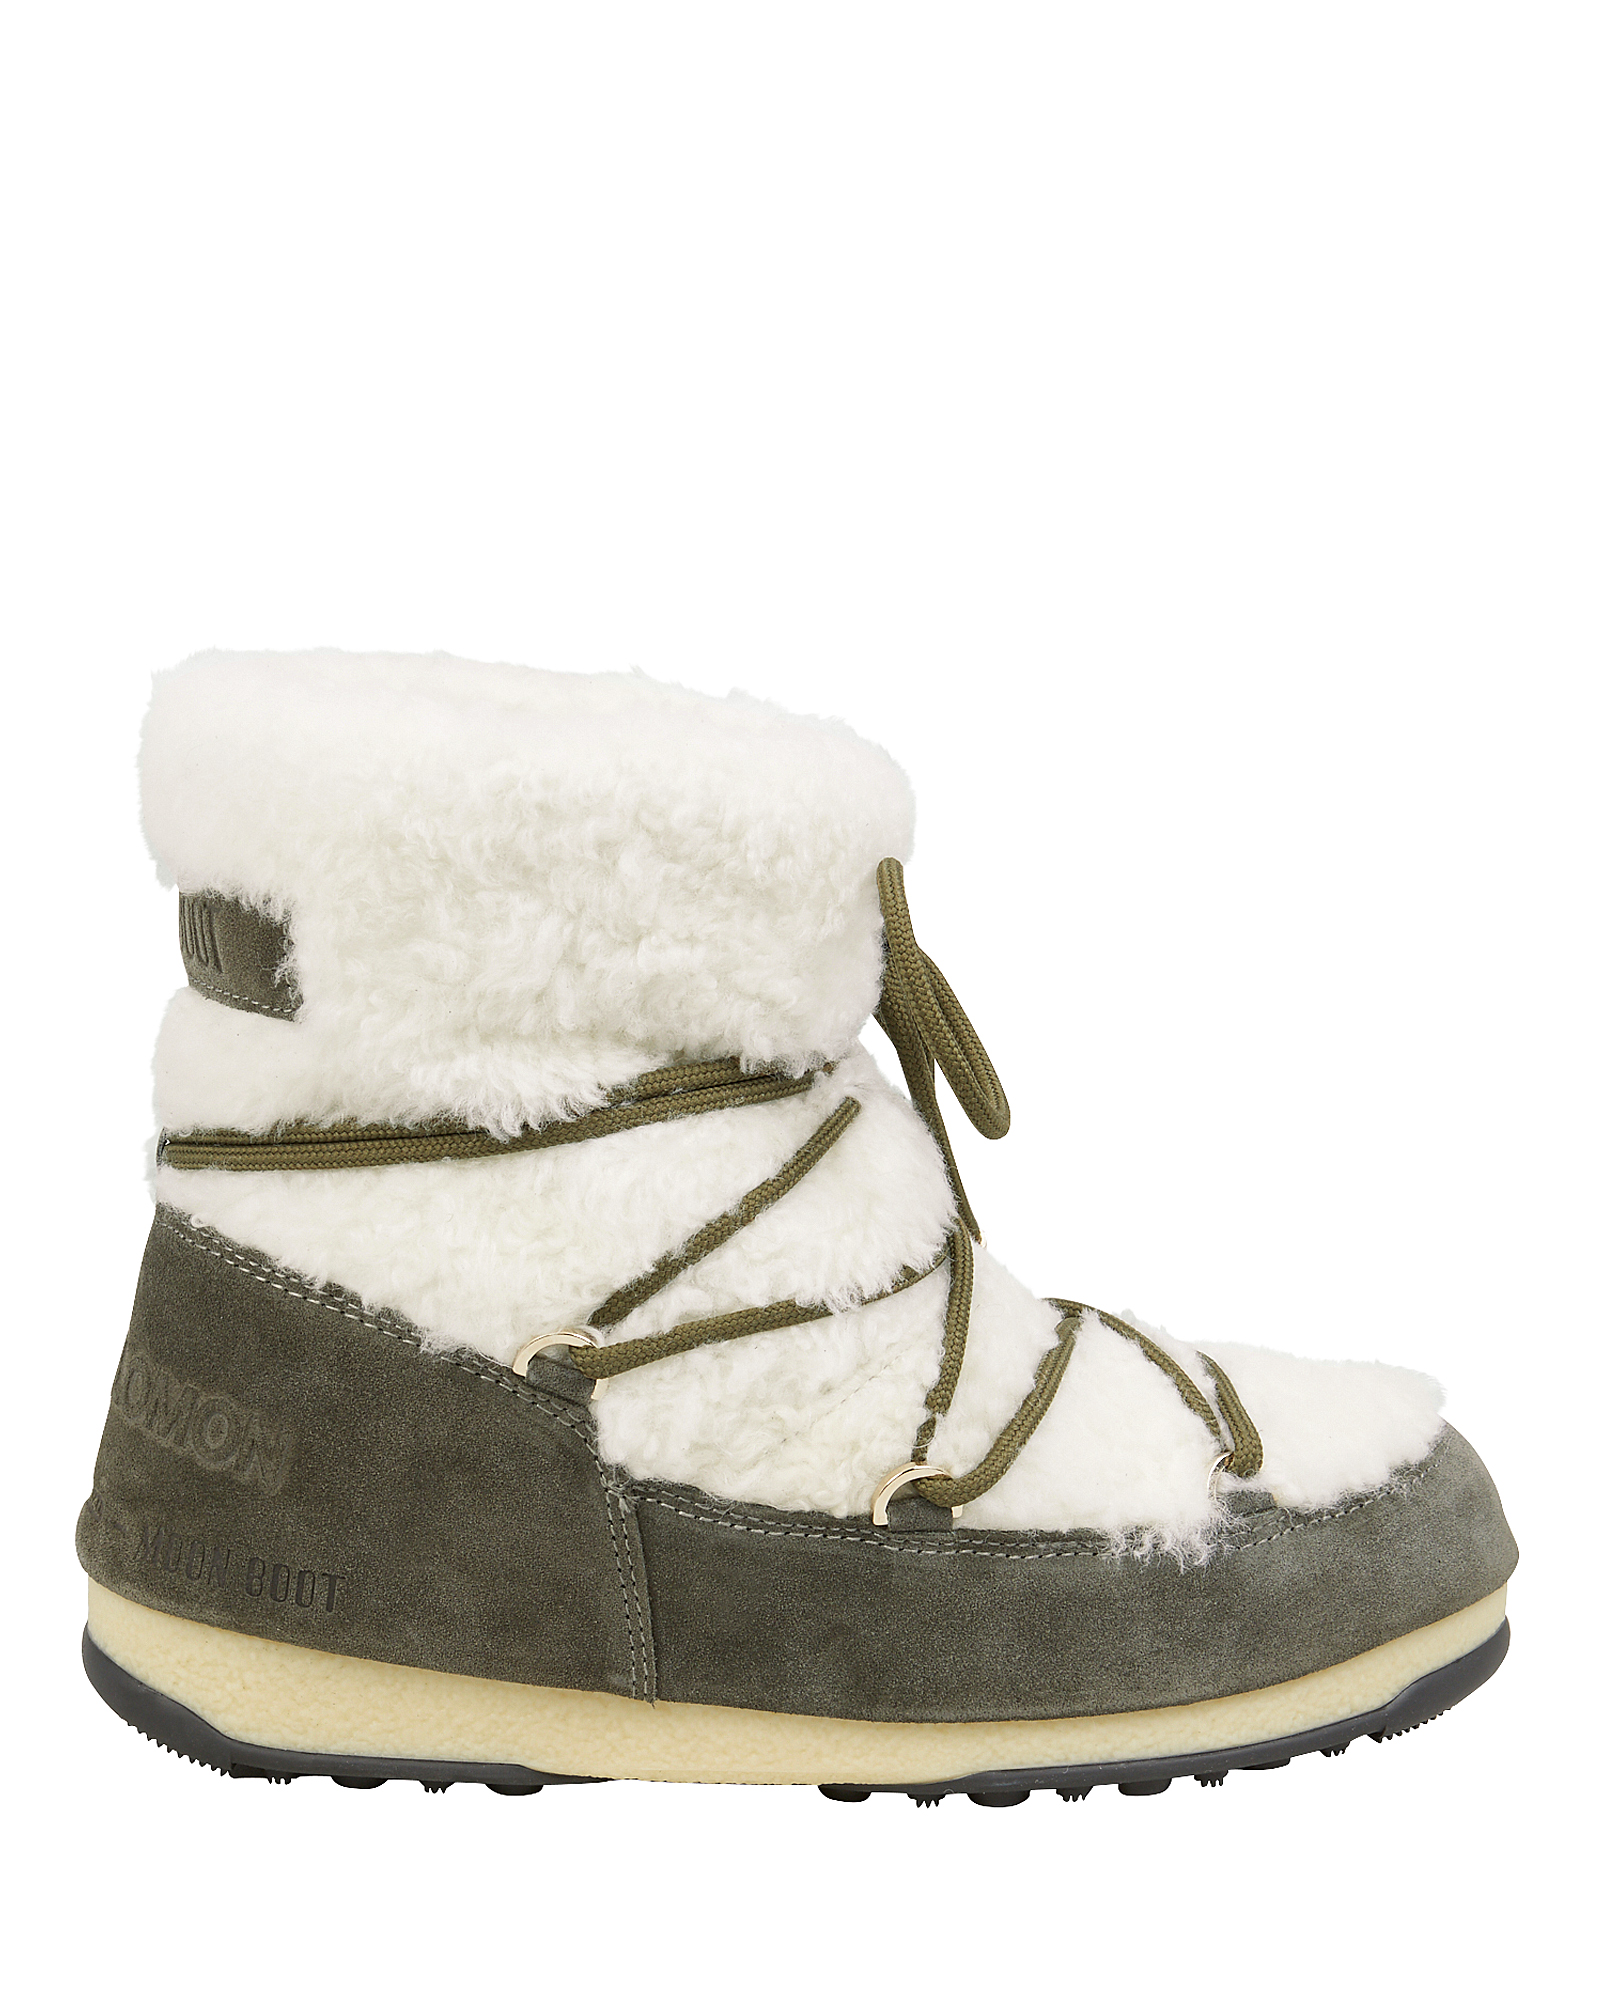 Yves Salomon Shearling And Suede Moon Boots